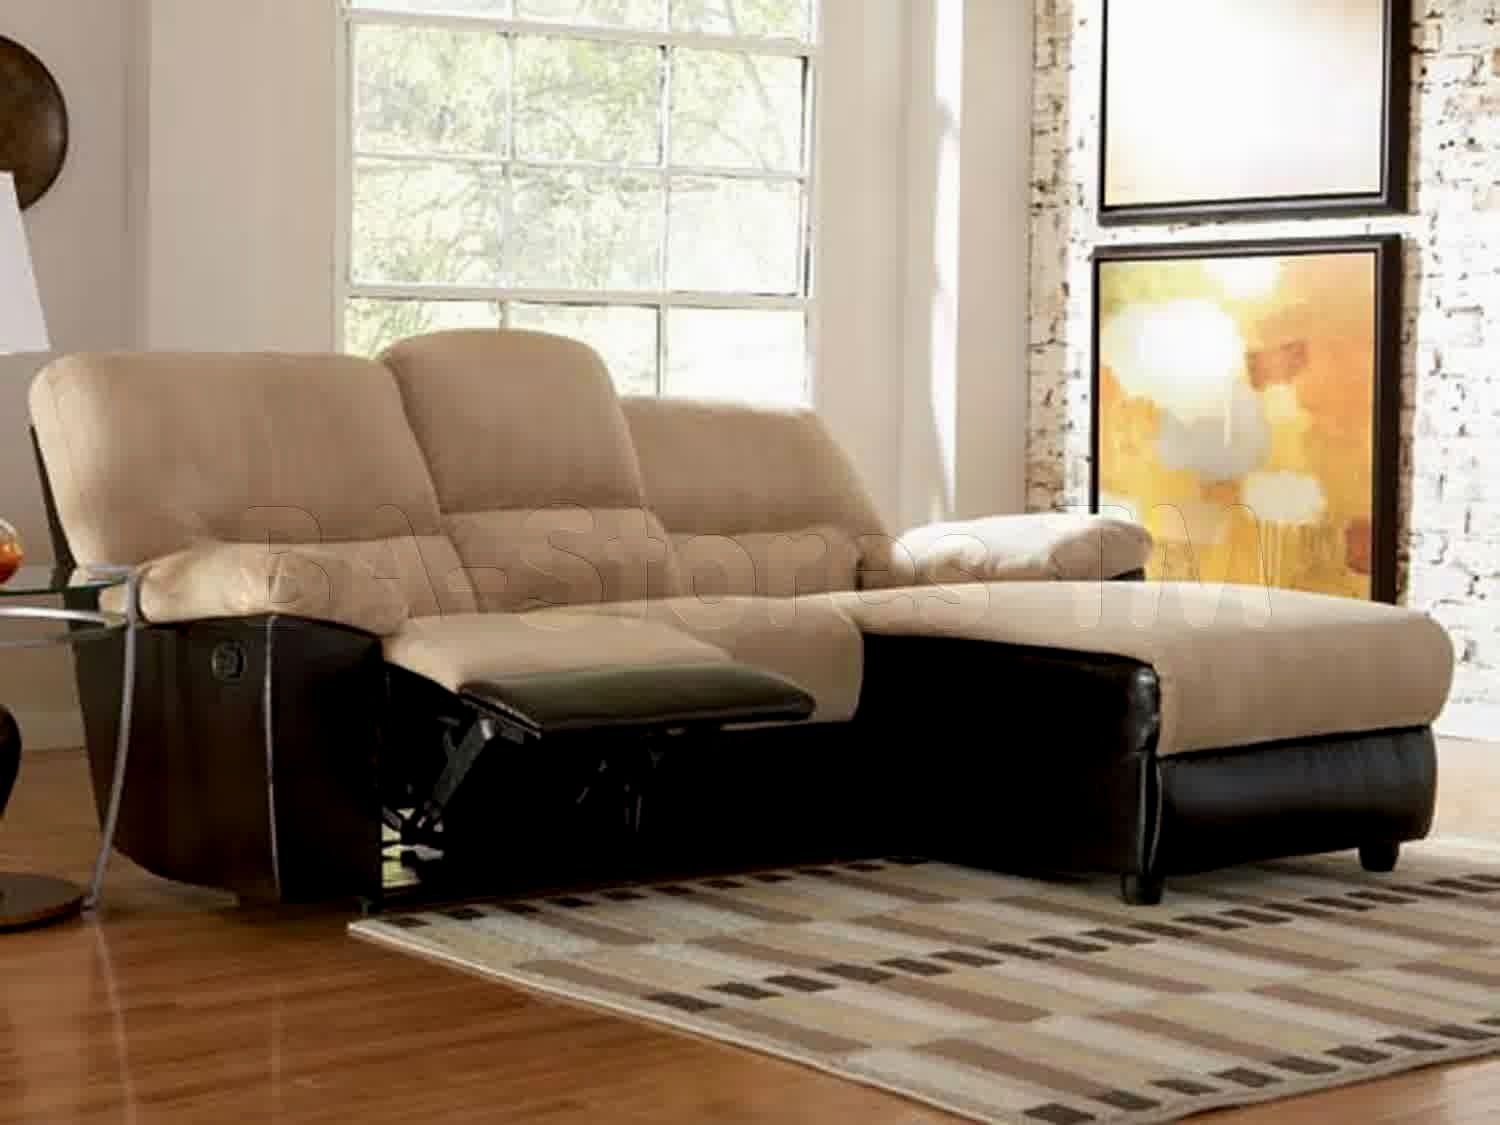 inspirational sleeper sectional sofa image-Modern Sleeper Sectional sofa Plan